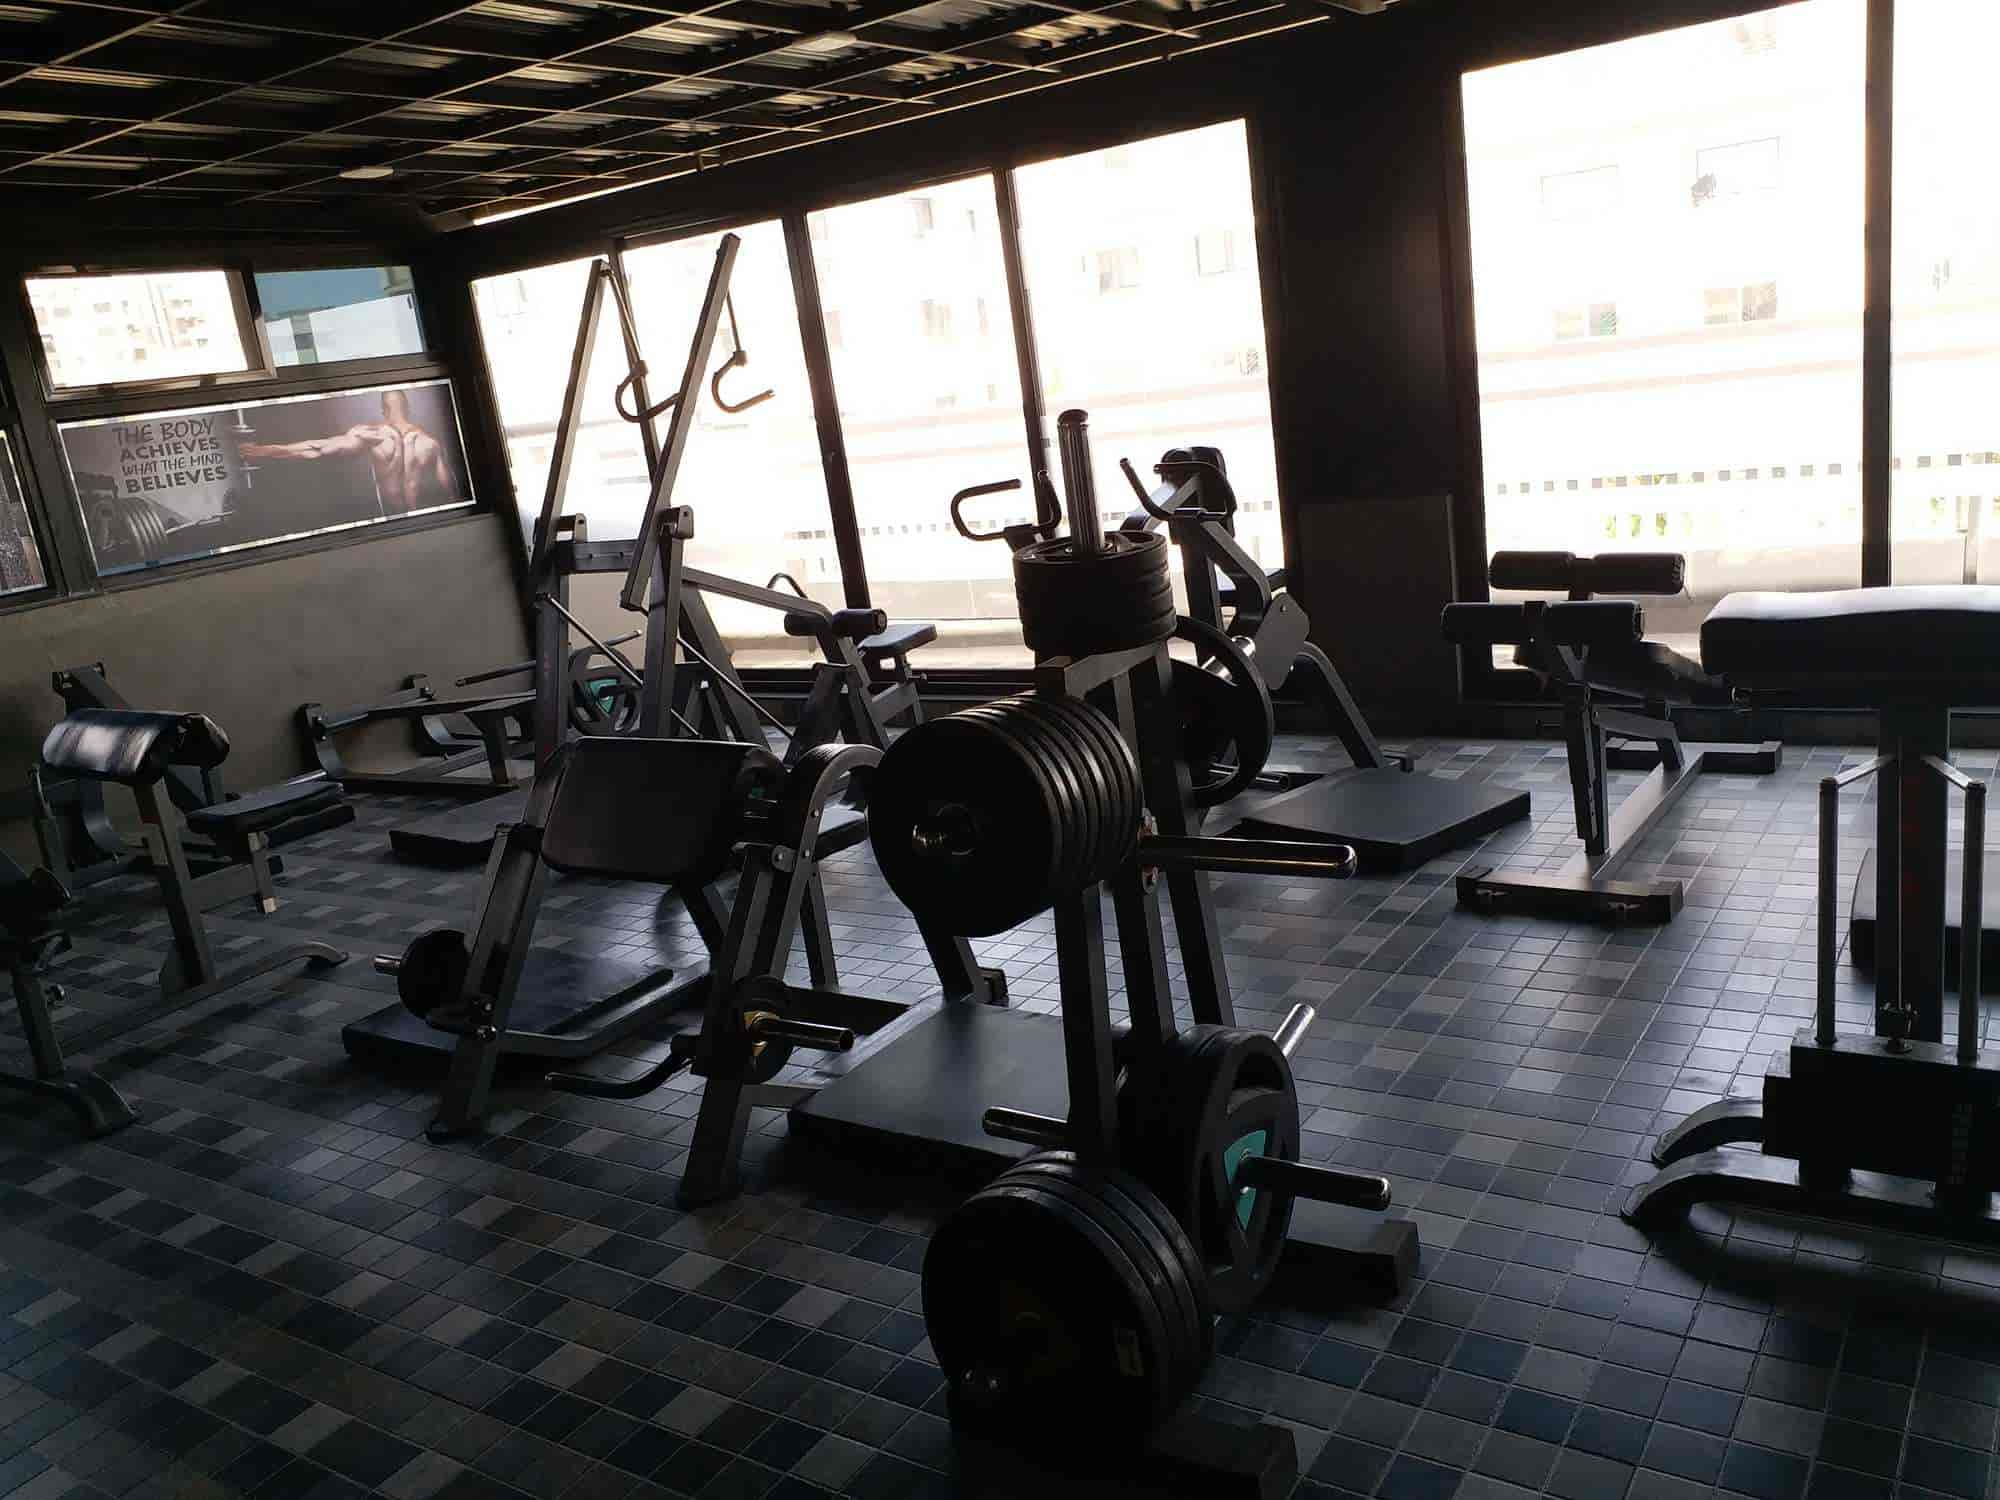 Work out world fitness and muscle garage body building gym photos